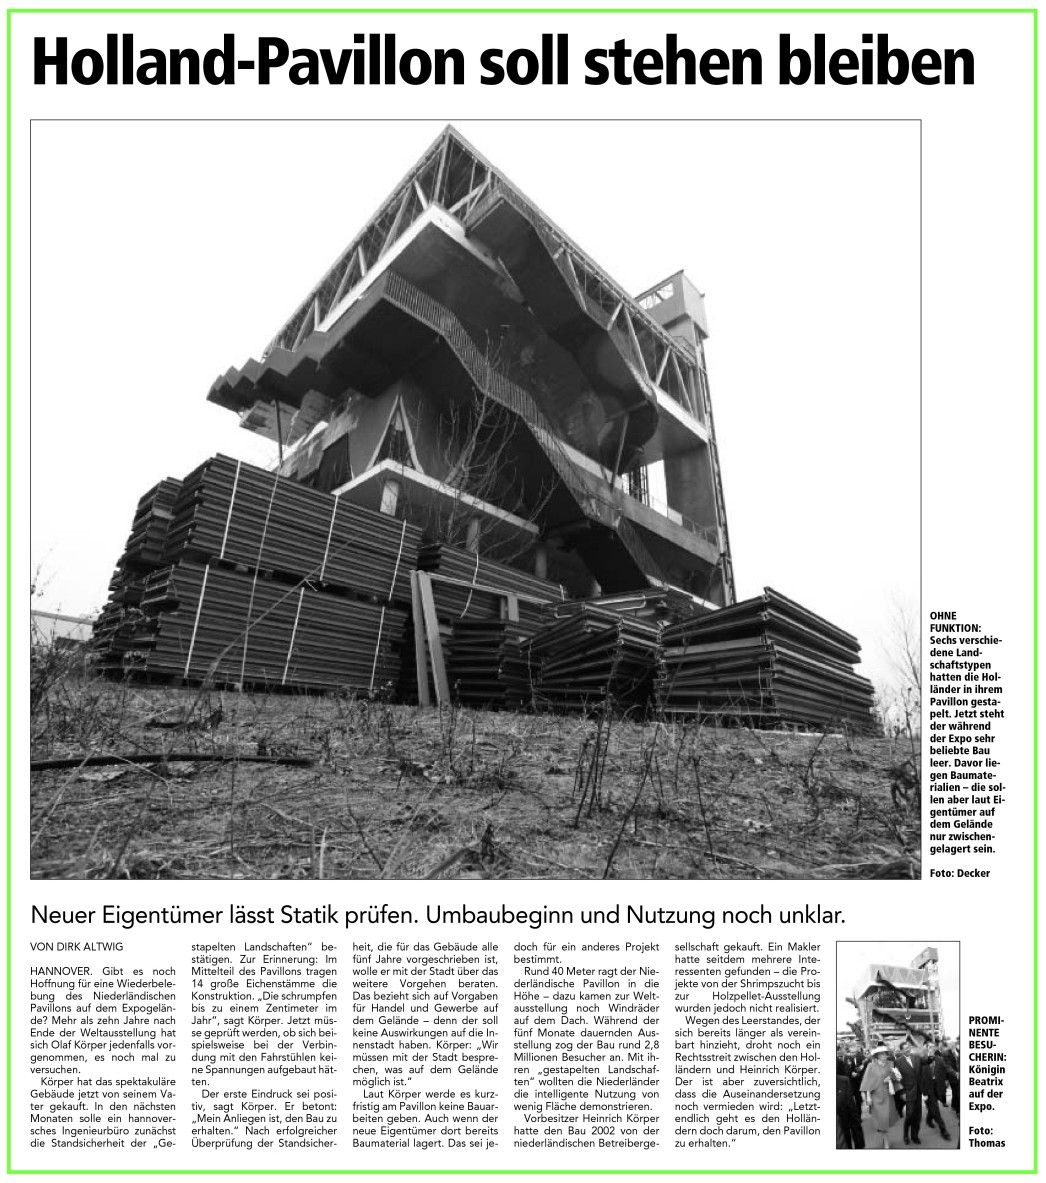 Holz Pavillon Messe Hannover ~ Hannover  Messe & EXPO Gelände  Kronsberg  Page 6  SkyscraperCity